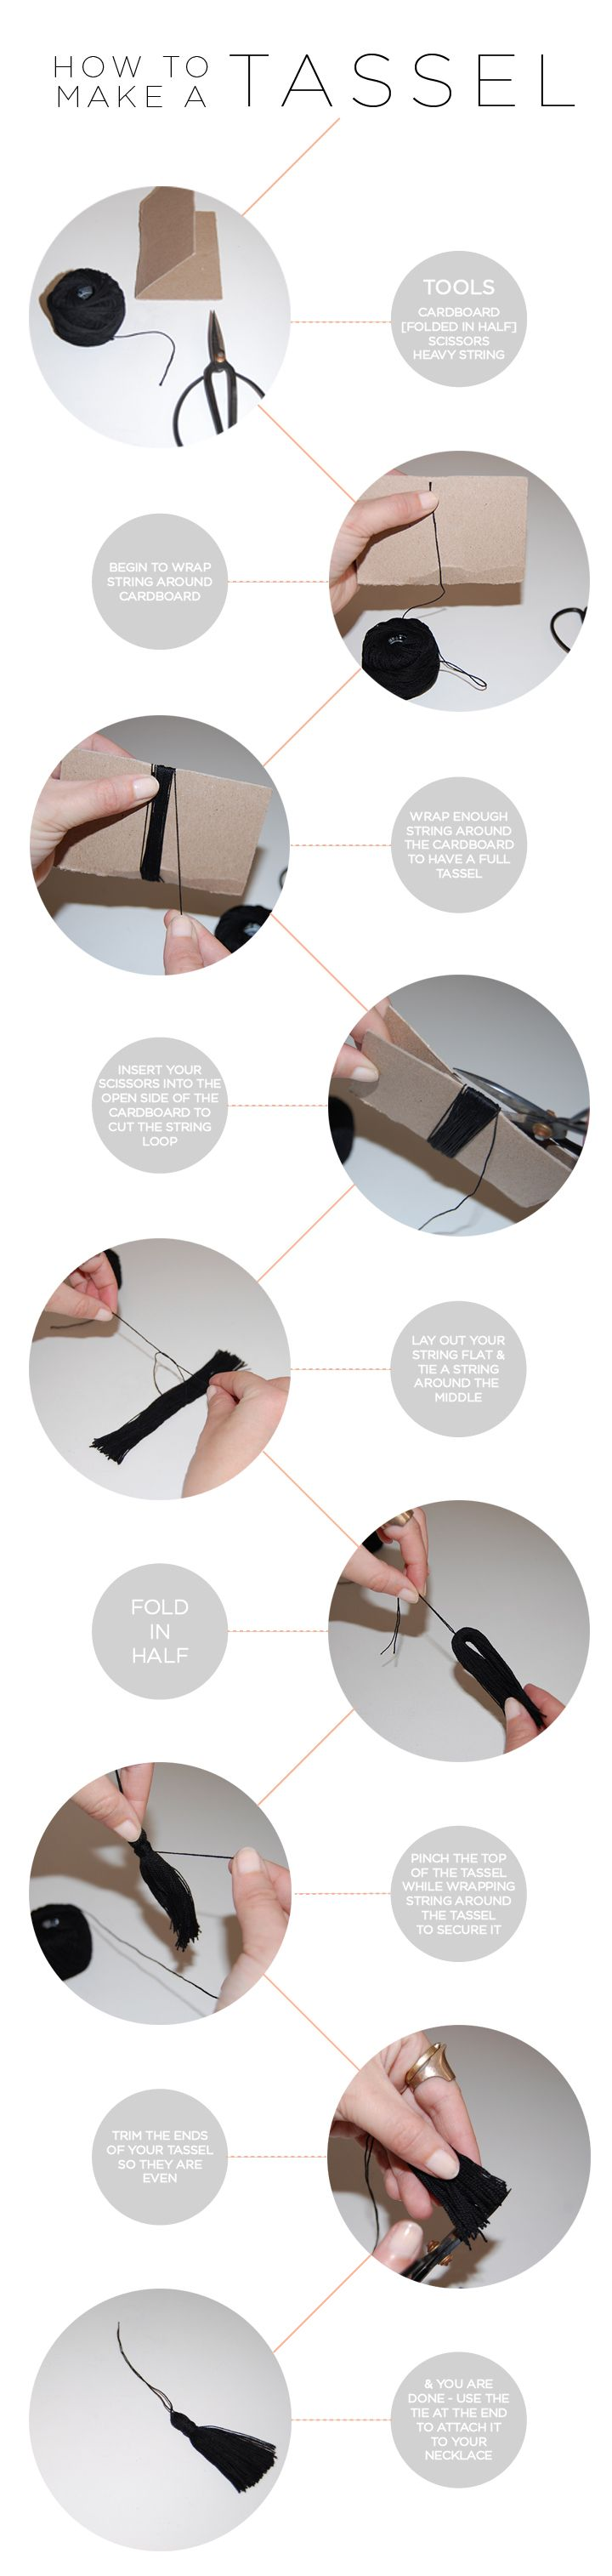 DIY How to make a Tassle.